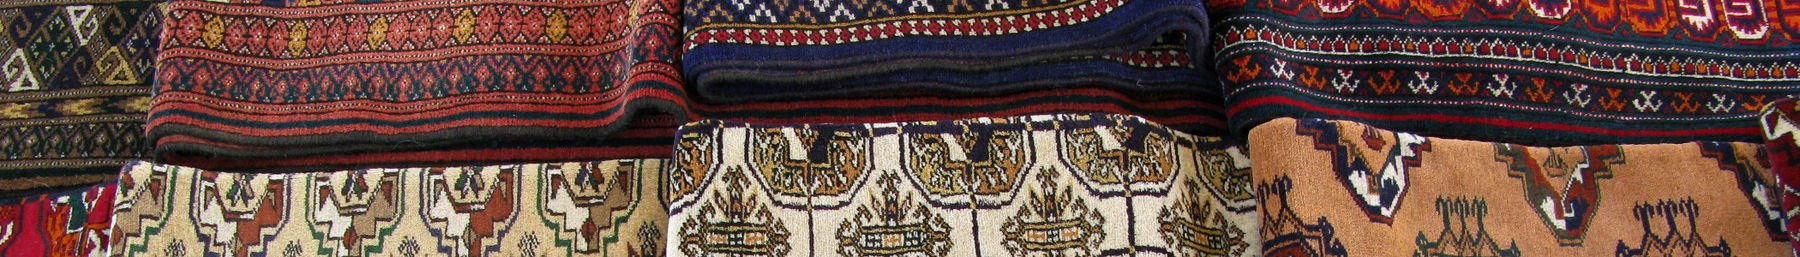 Carpets, Turkmenistan's most famous product, for sale in the Tokulchka Bazaar